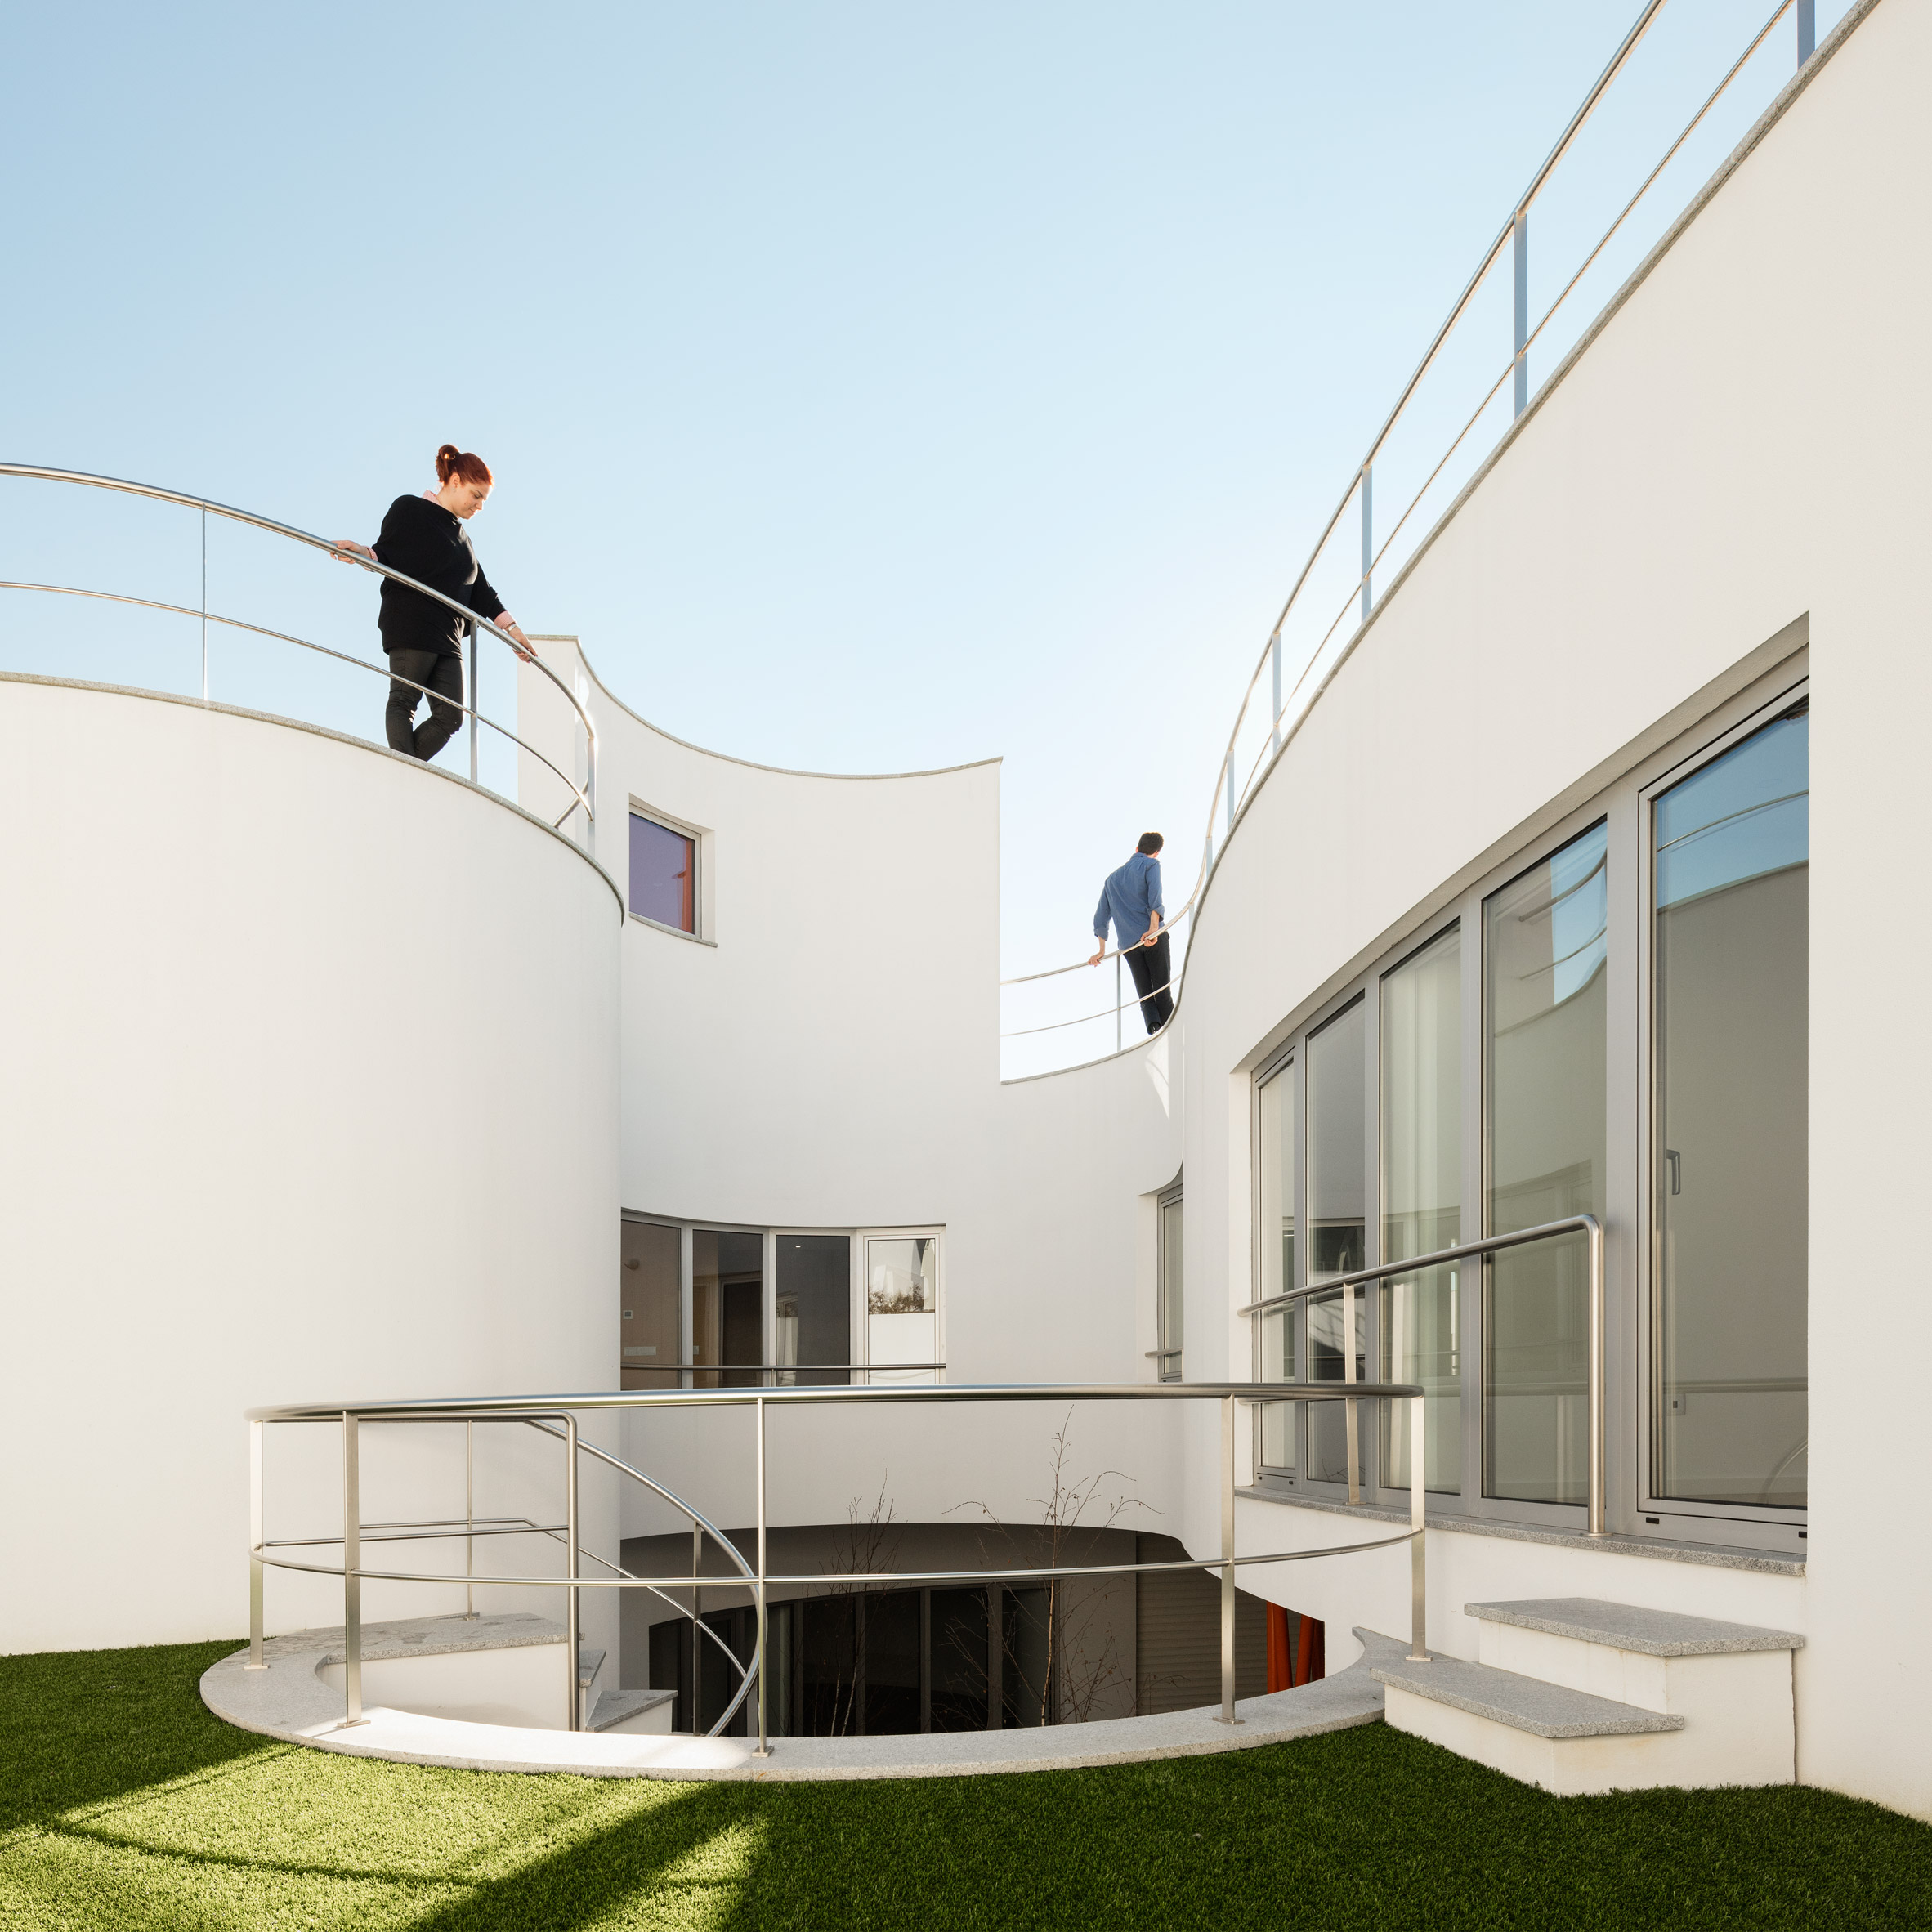 House L27 by dIONISO LAB is arranged around a curving courtyard in northern Portugal